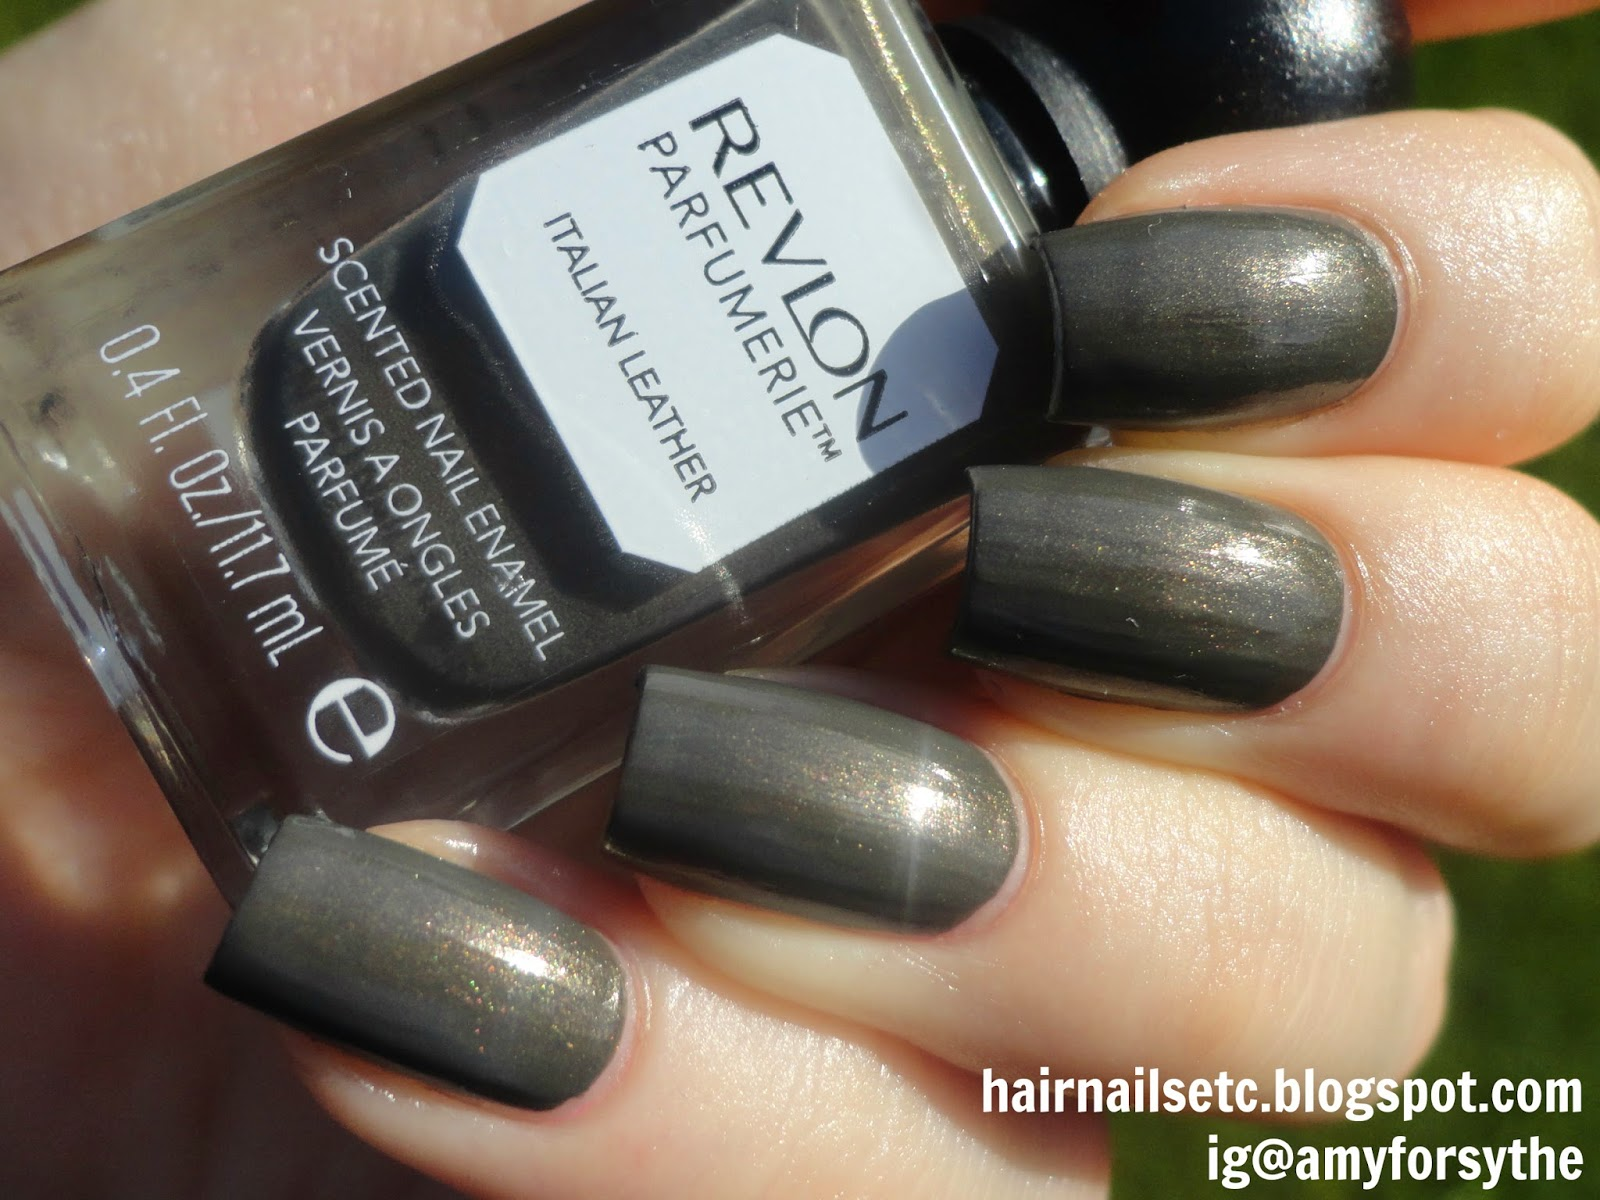 Swatch and review of Revlon Parfumerie Nail Enamel Varnish Polish in Italian Leather